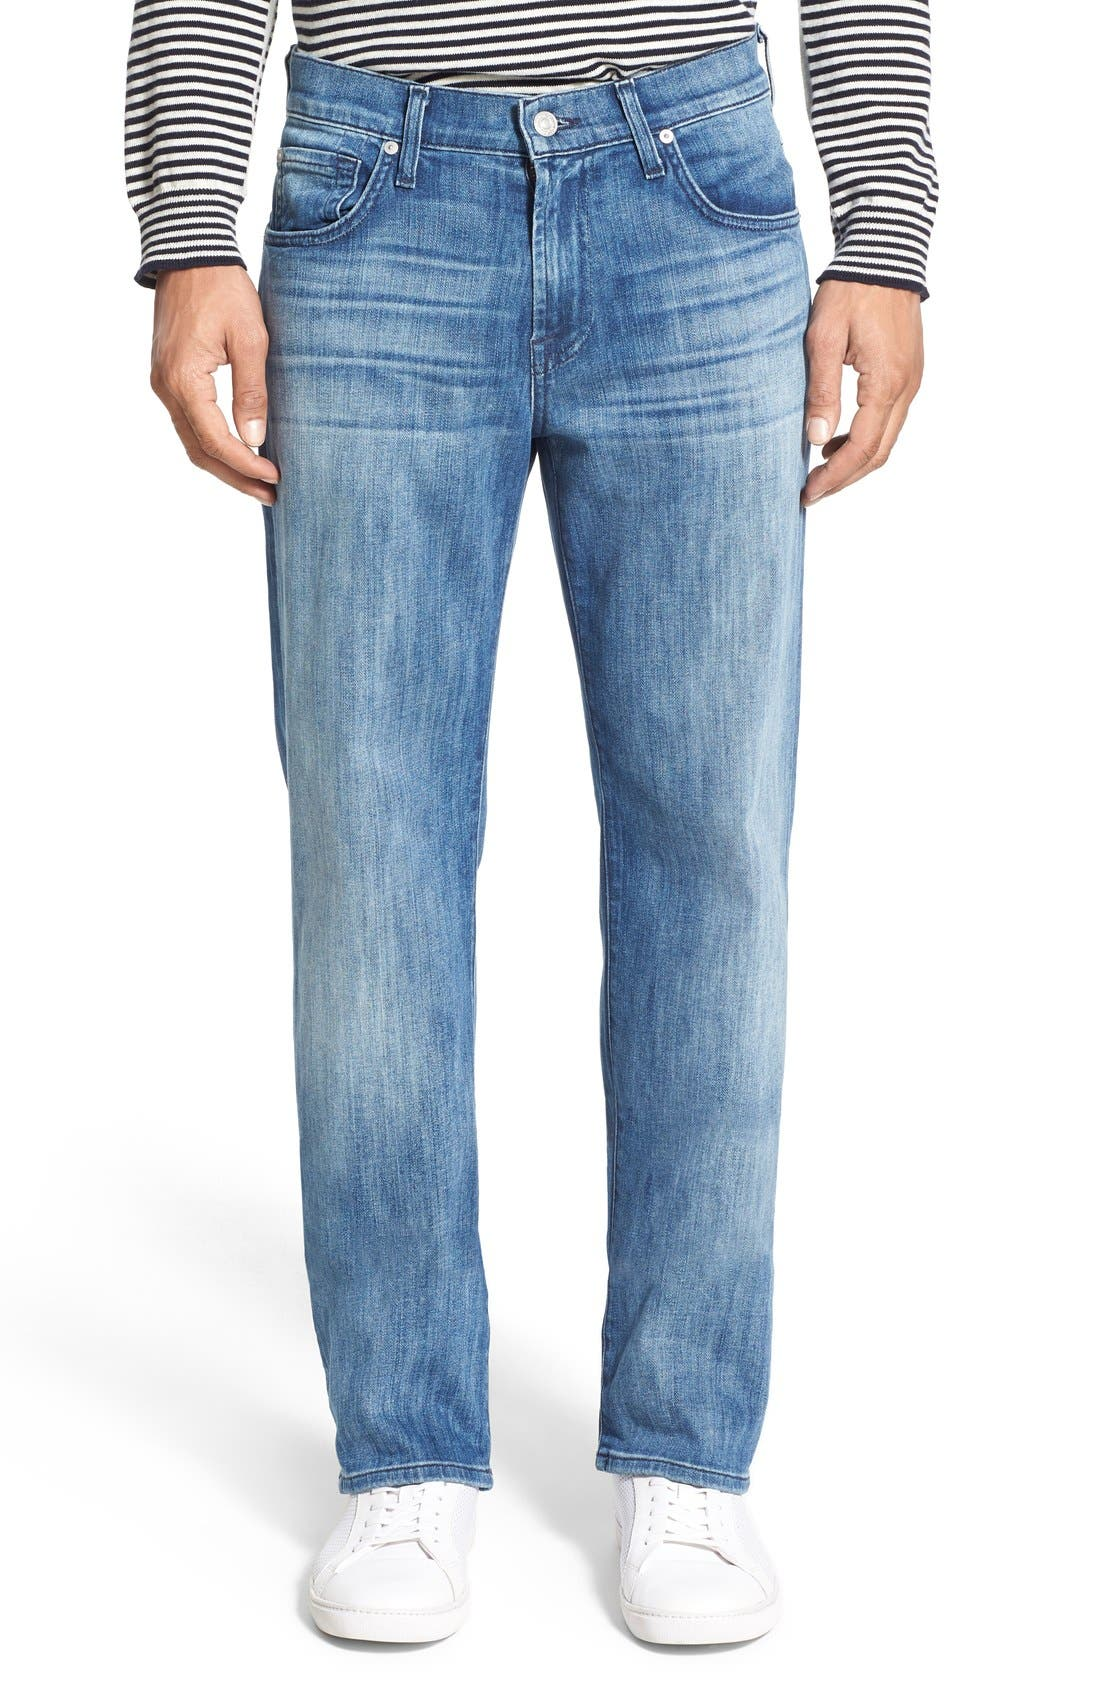 Luxe Performance - Austyn Relaxed Straight Leg Jeans,                             Main thumbnail 1, color,                             NAKKITTA BLUE